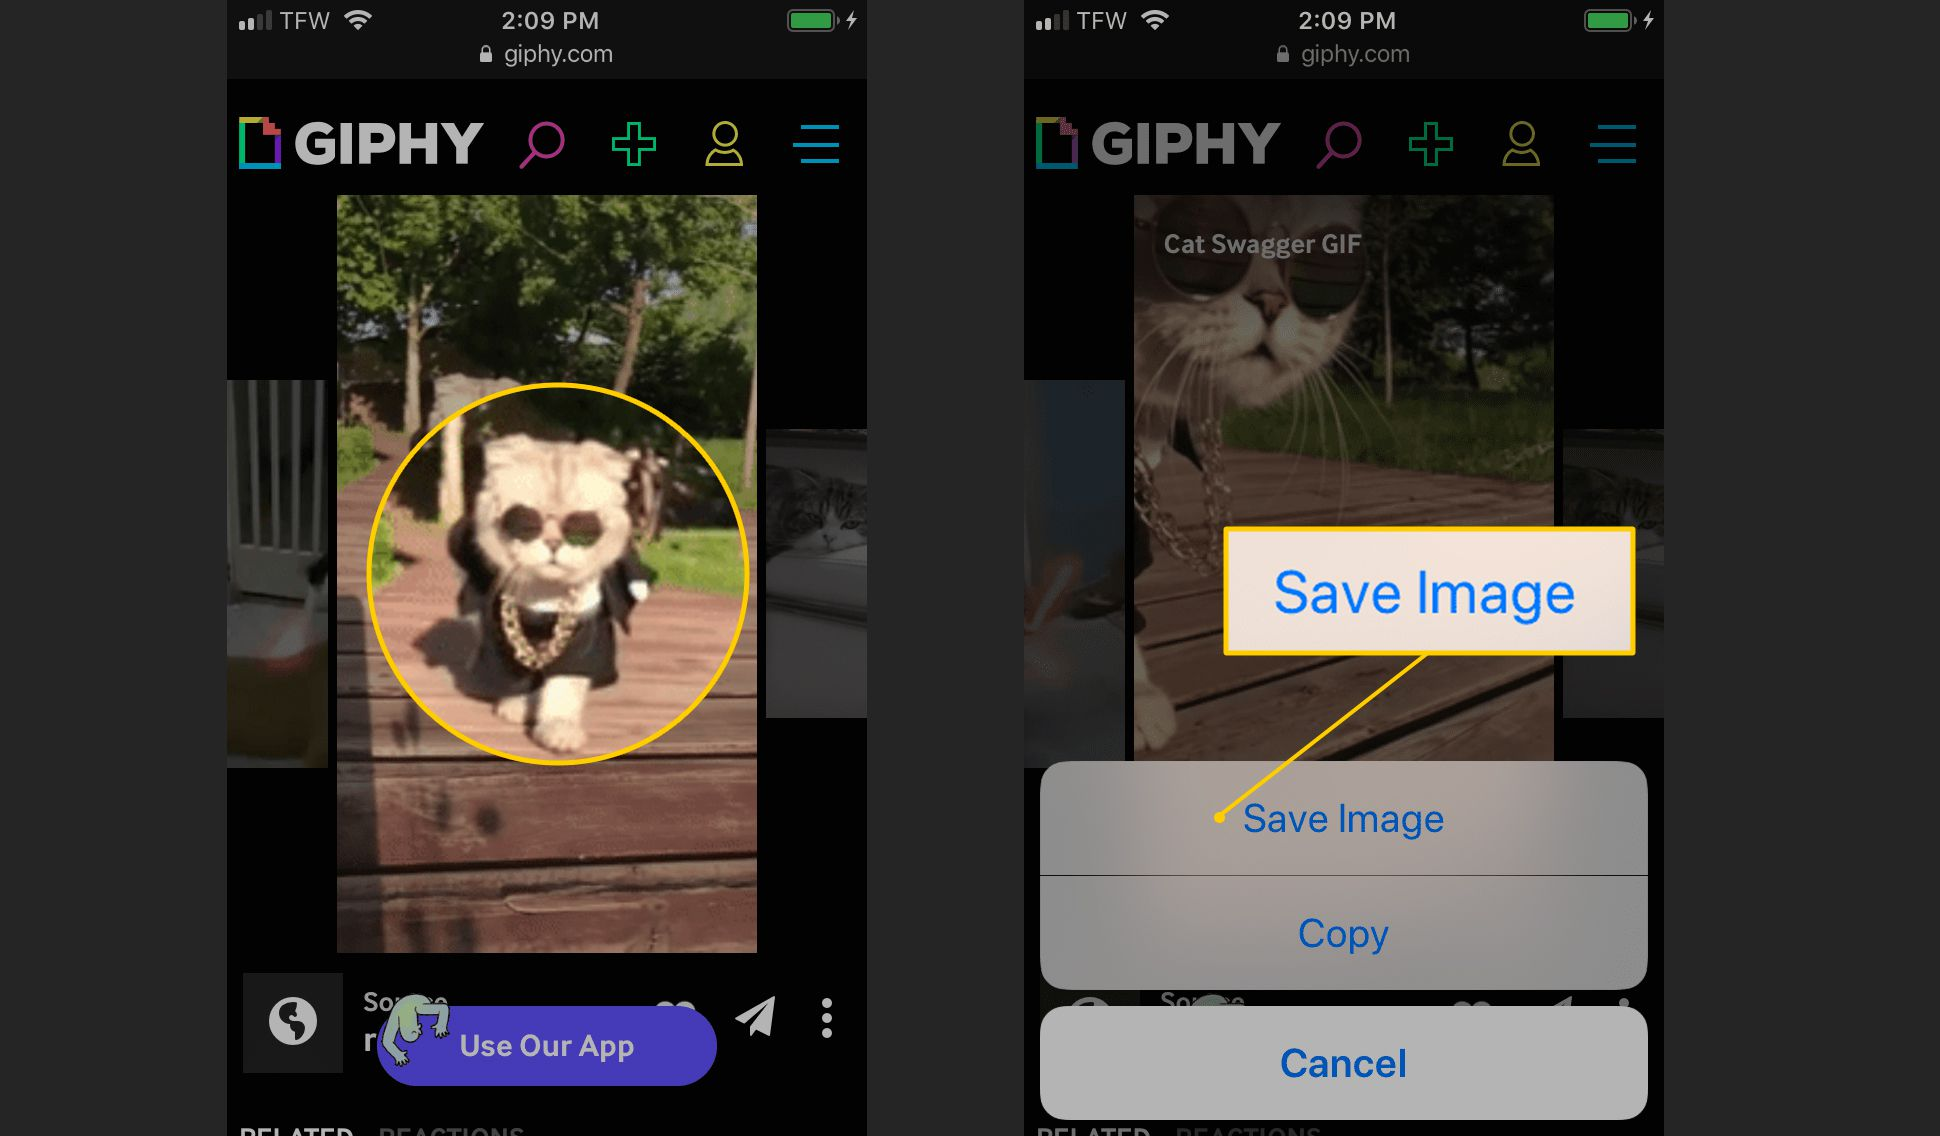 GIF to save and Save Image button on iOS